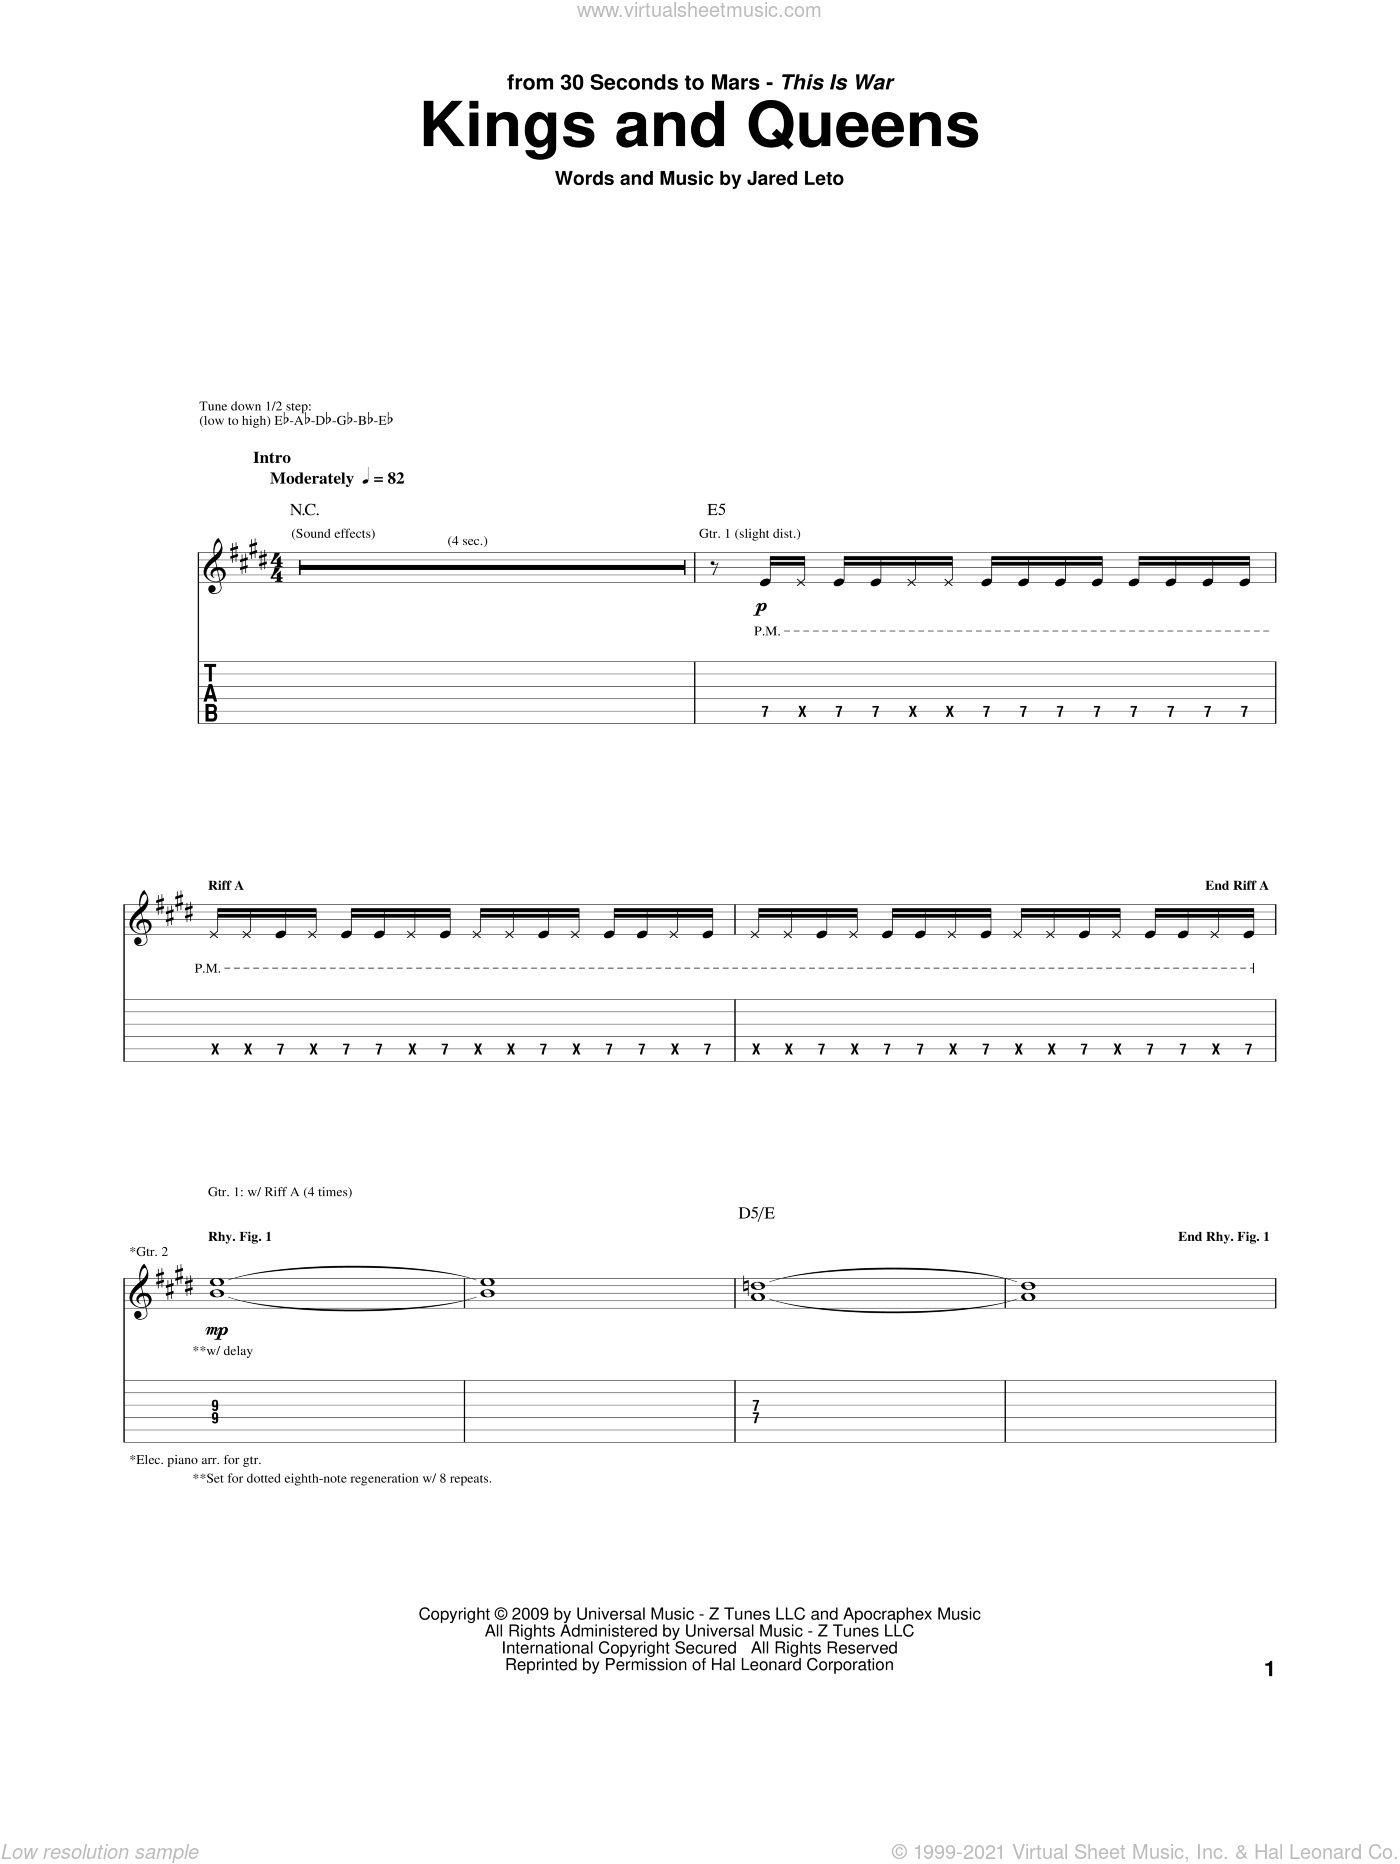 Kings And Queens sheet music for guitar (tablature) by Jared Leto